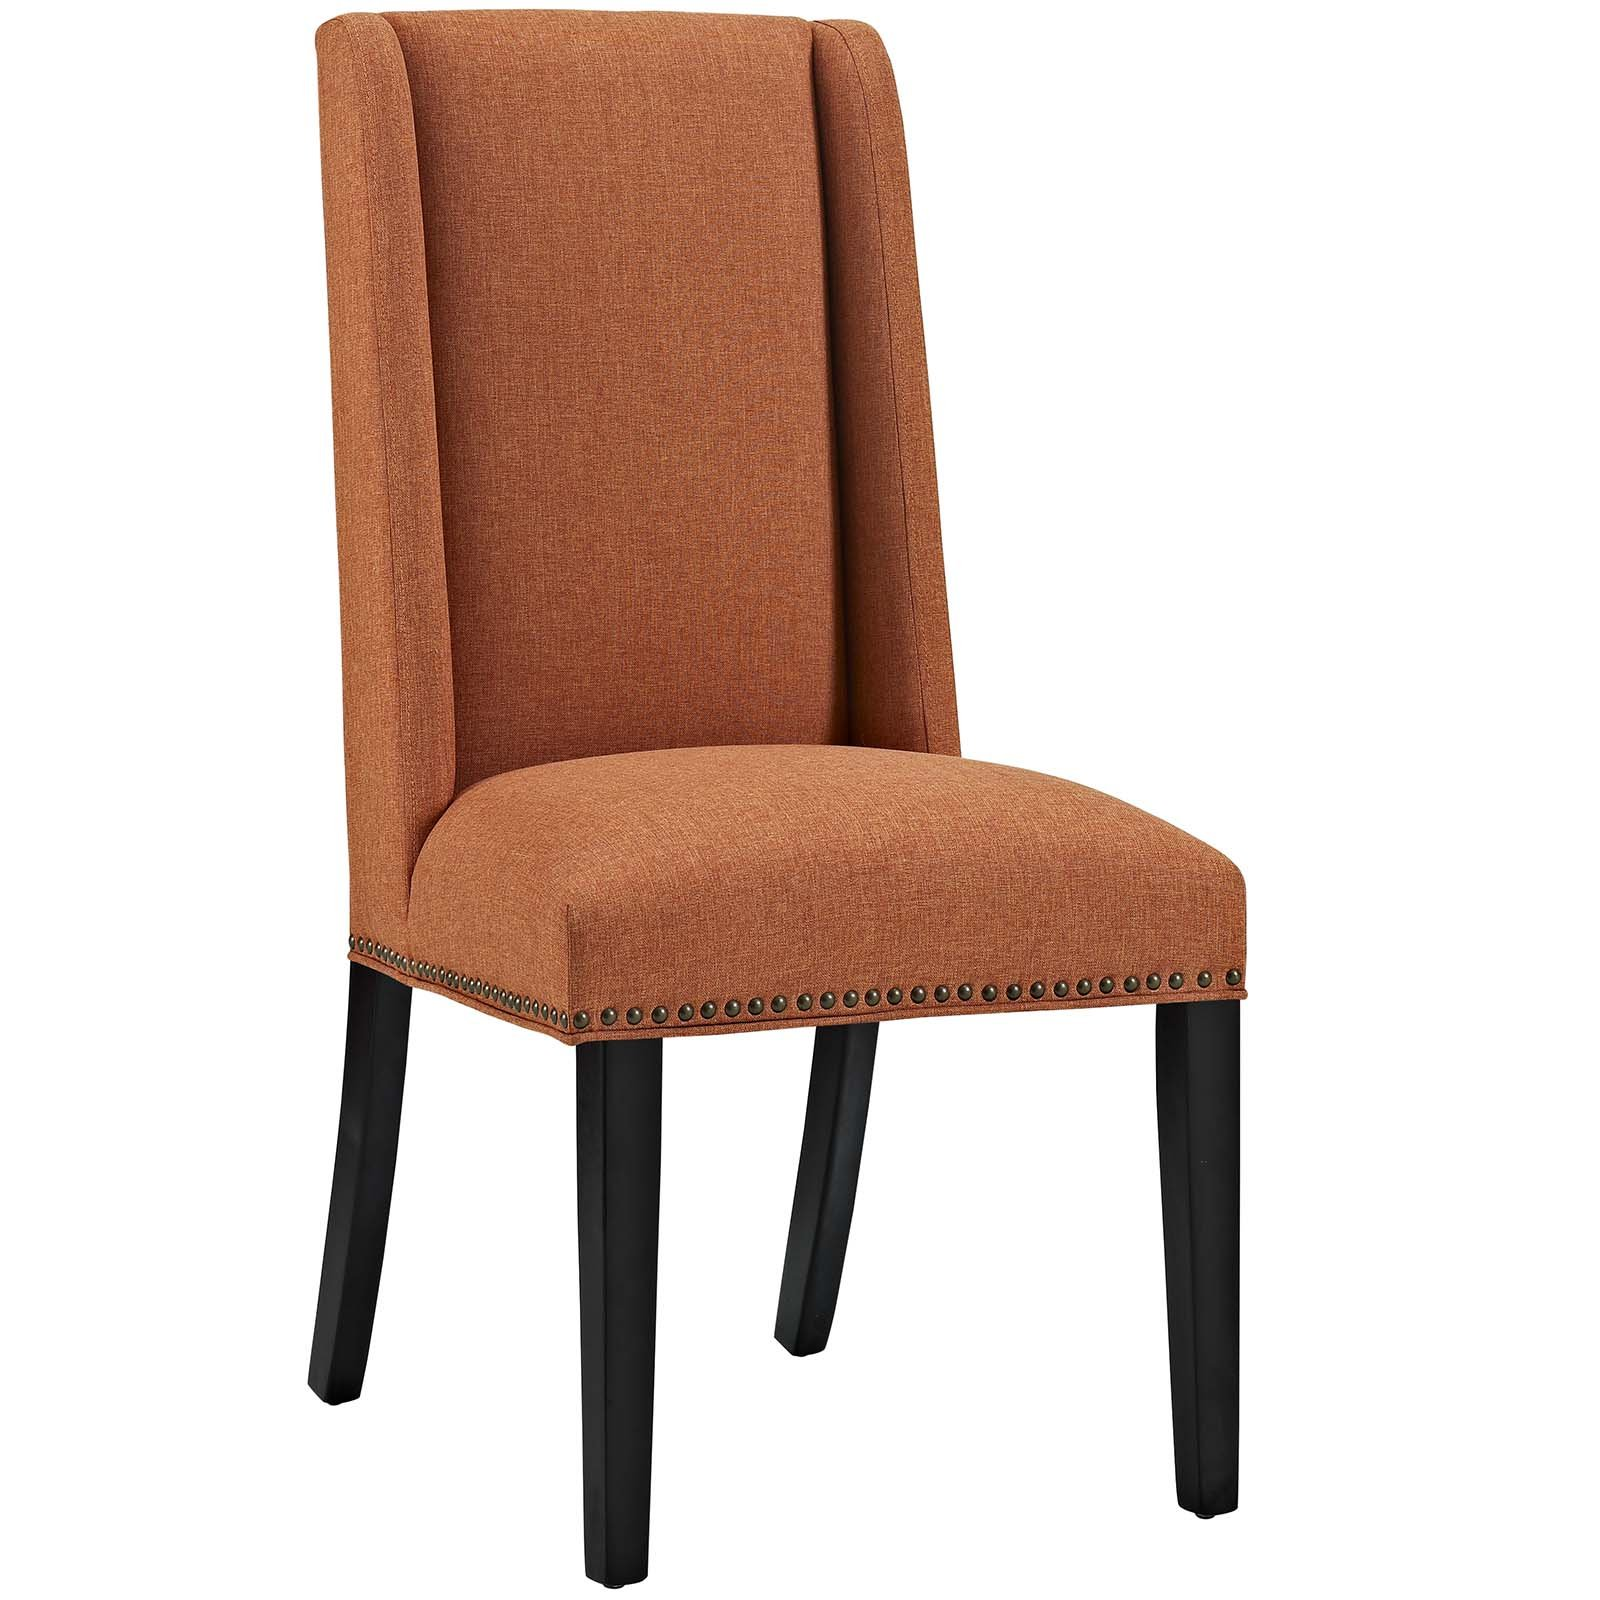 Modway Baron Upholstered Fabric Modern Tall Back Dining Parsons Chair With Nailhead Trim And Wood Legs In Orange